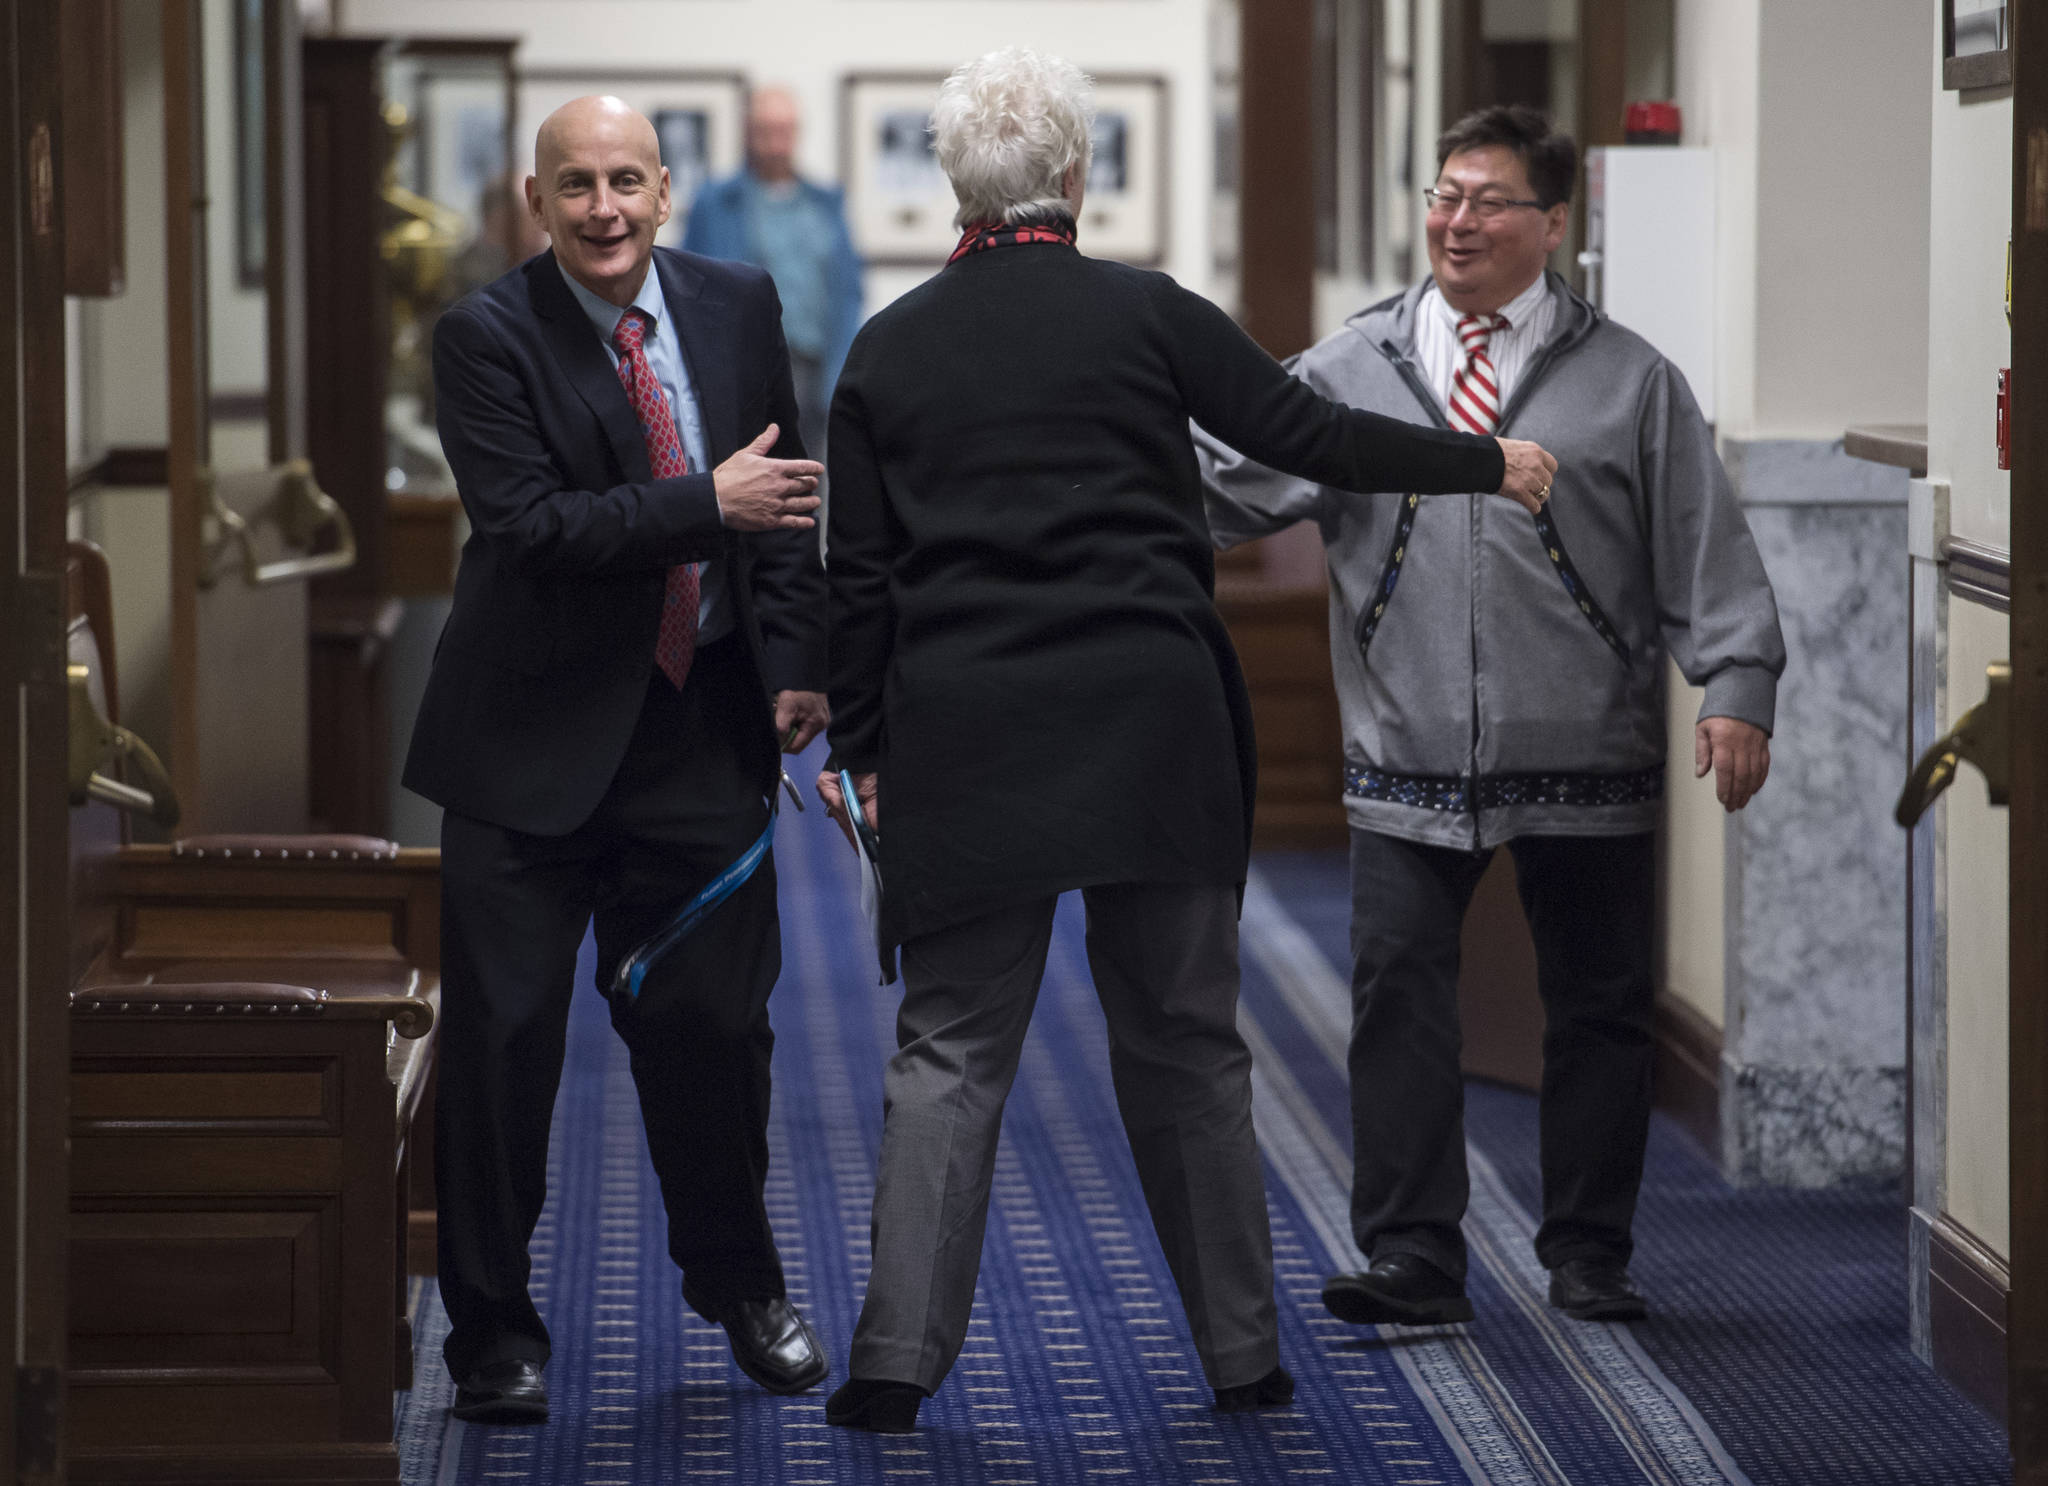 Rep. Daniel Ortiz, NA-Ketchikan, left, Rep. Louise Stutes, R-Kodiak, center, and Rep. Dean Westlake, D-Kotzebue, greet each other on the first day of the fourth Special Session of the 30th Alaska Legisture on Monday, Oct. 23, 2017.